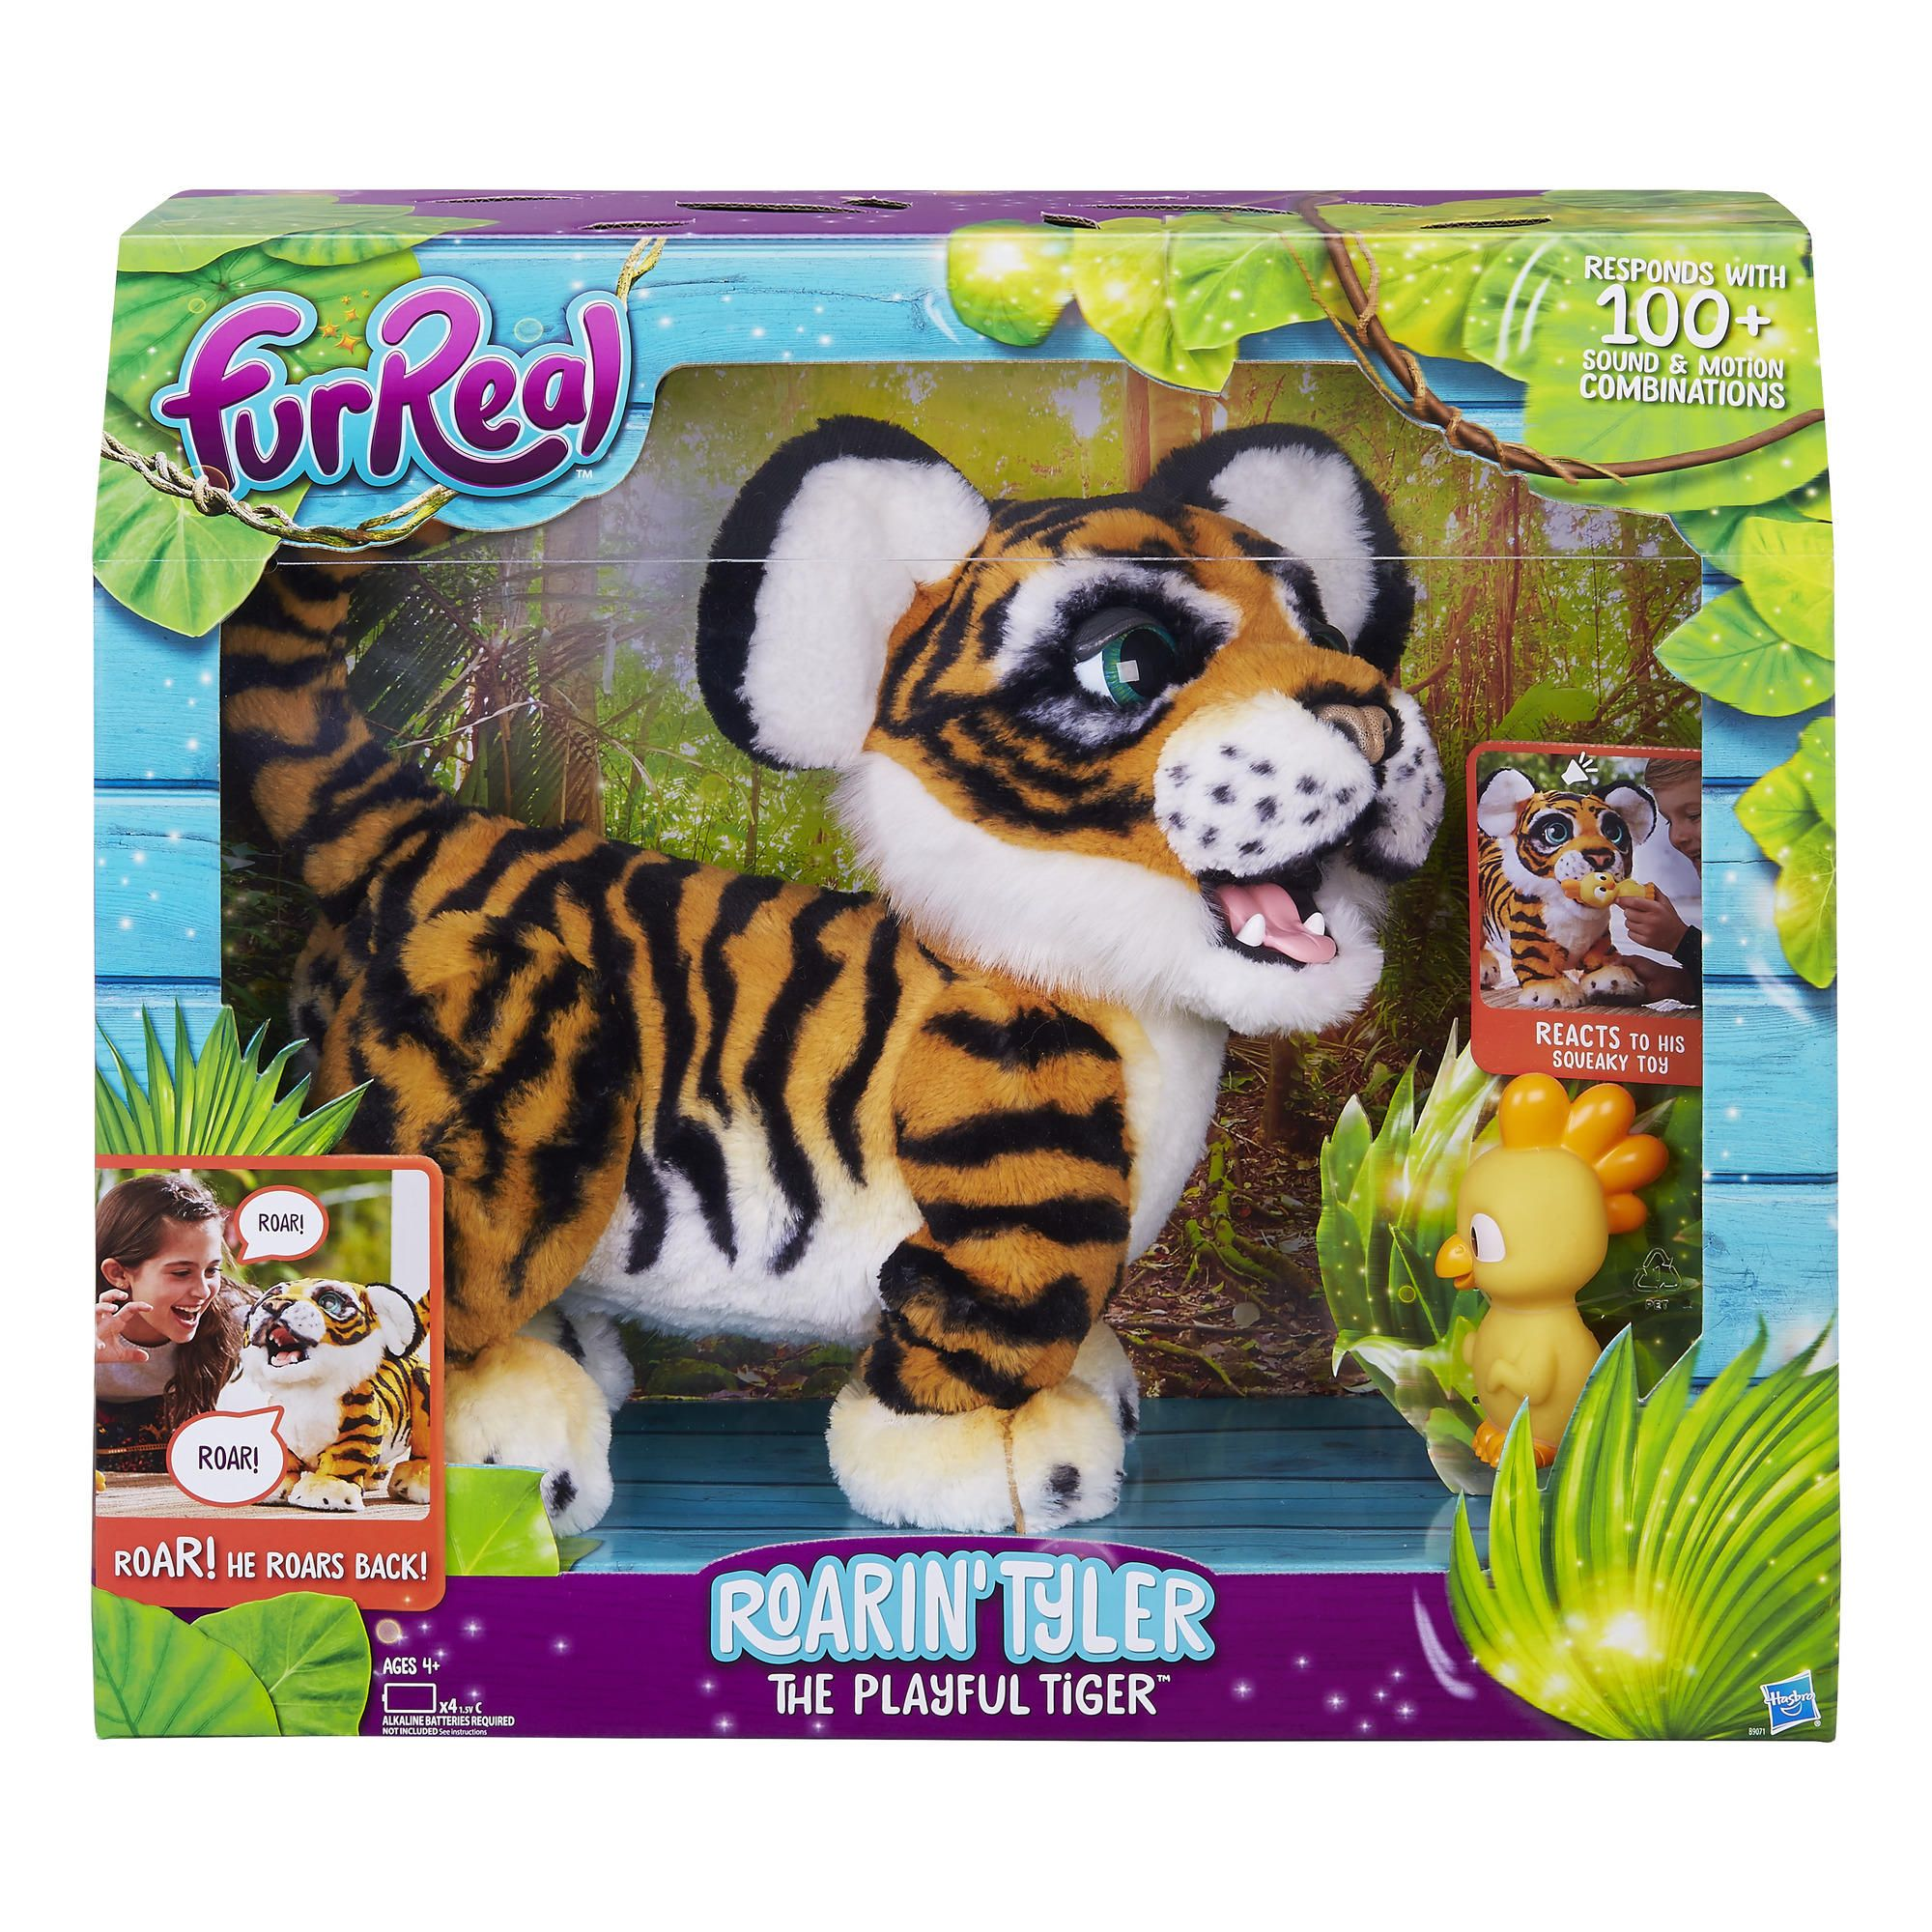 2017 Kmart Fab 15 Toys Holiday Gift Ideas For Boys & Girls